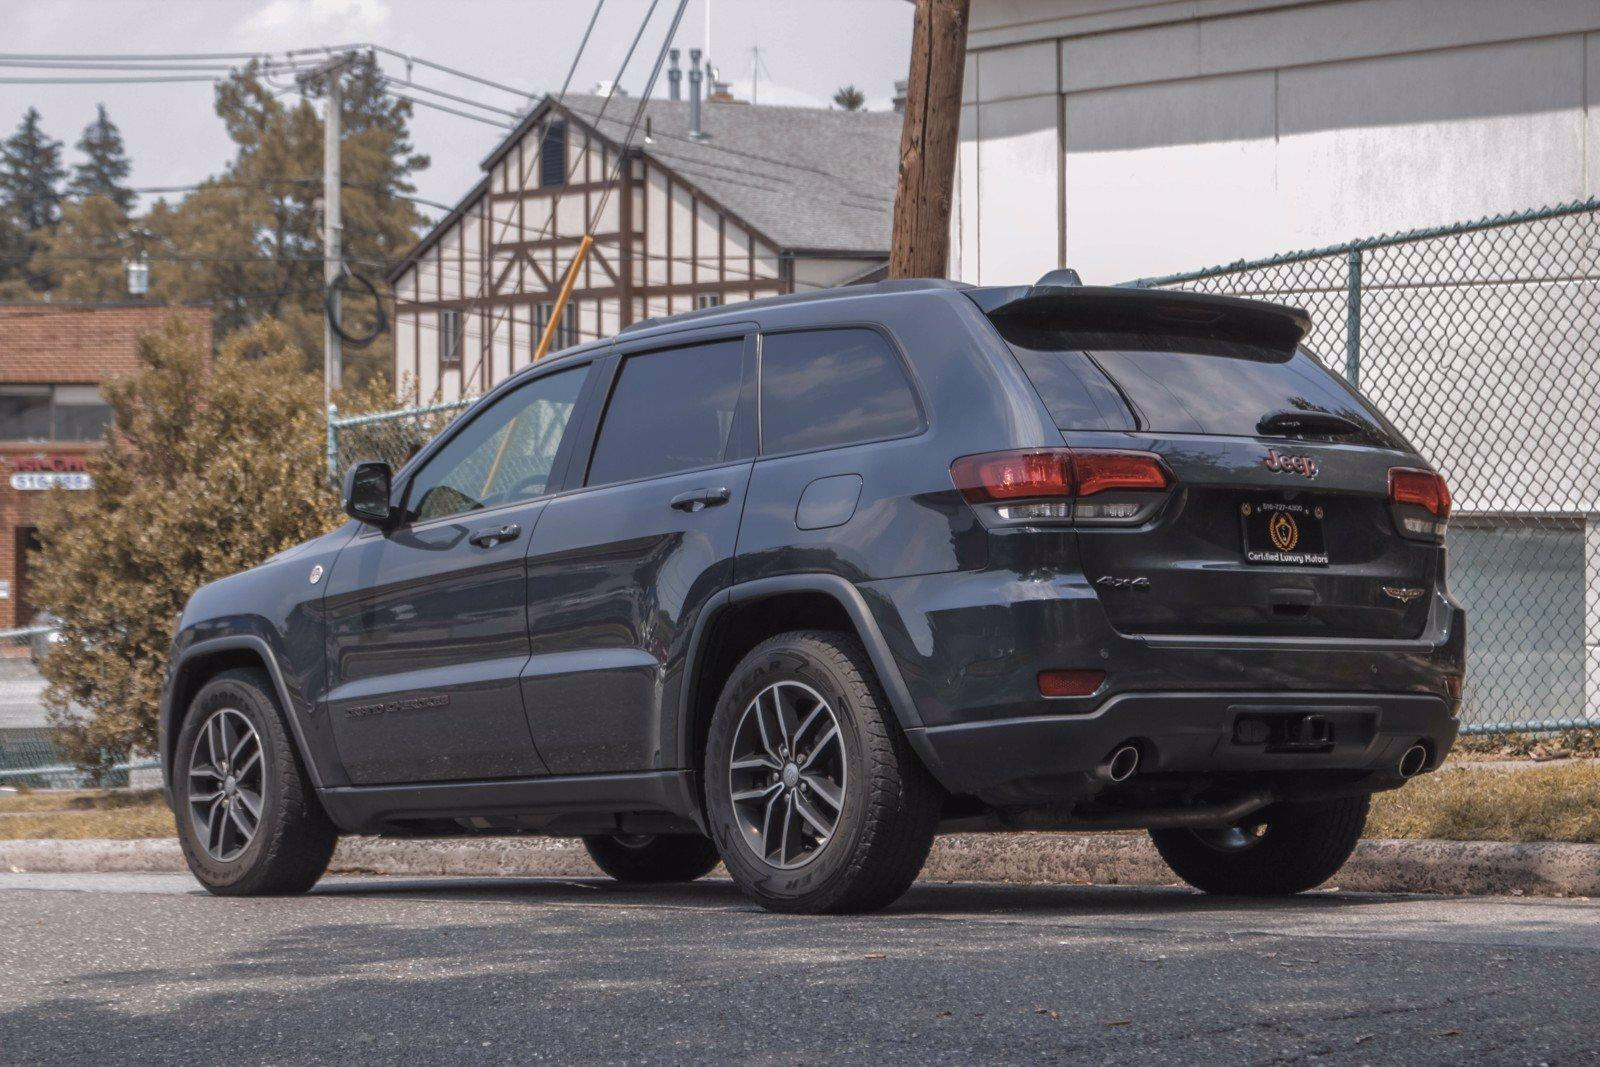 Used-2018-Jeep-Grand-Cherokee-Trailhawk